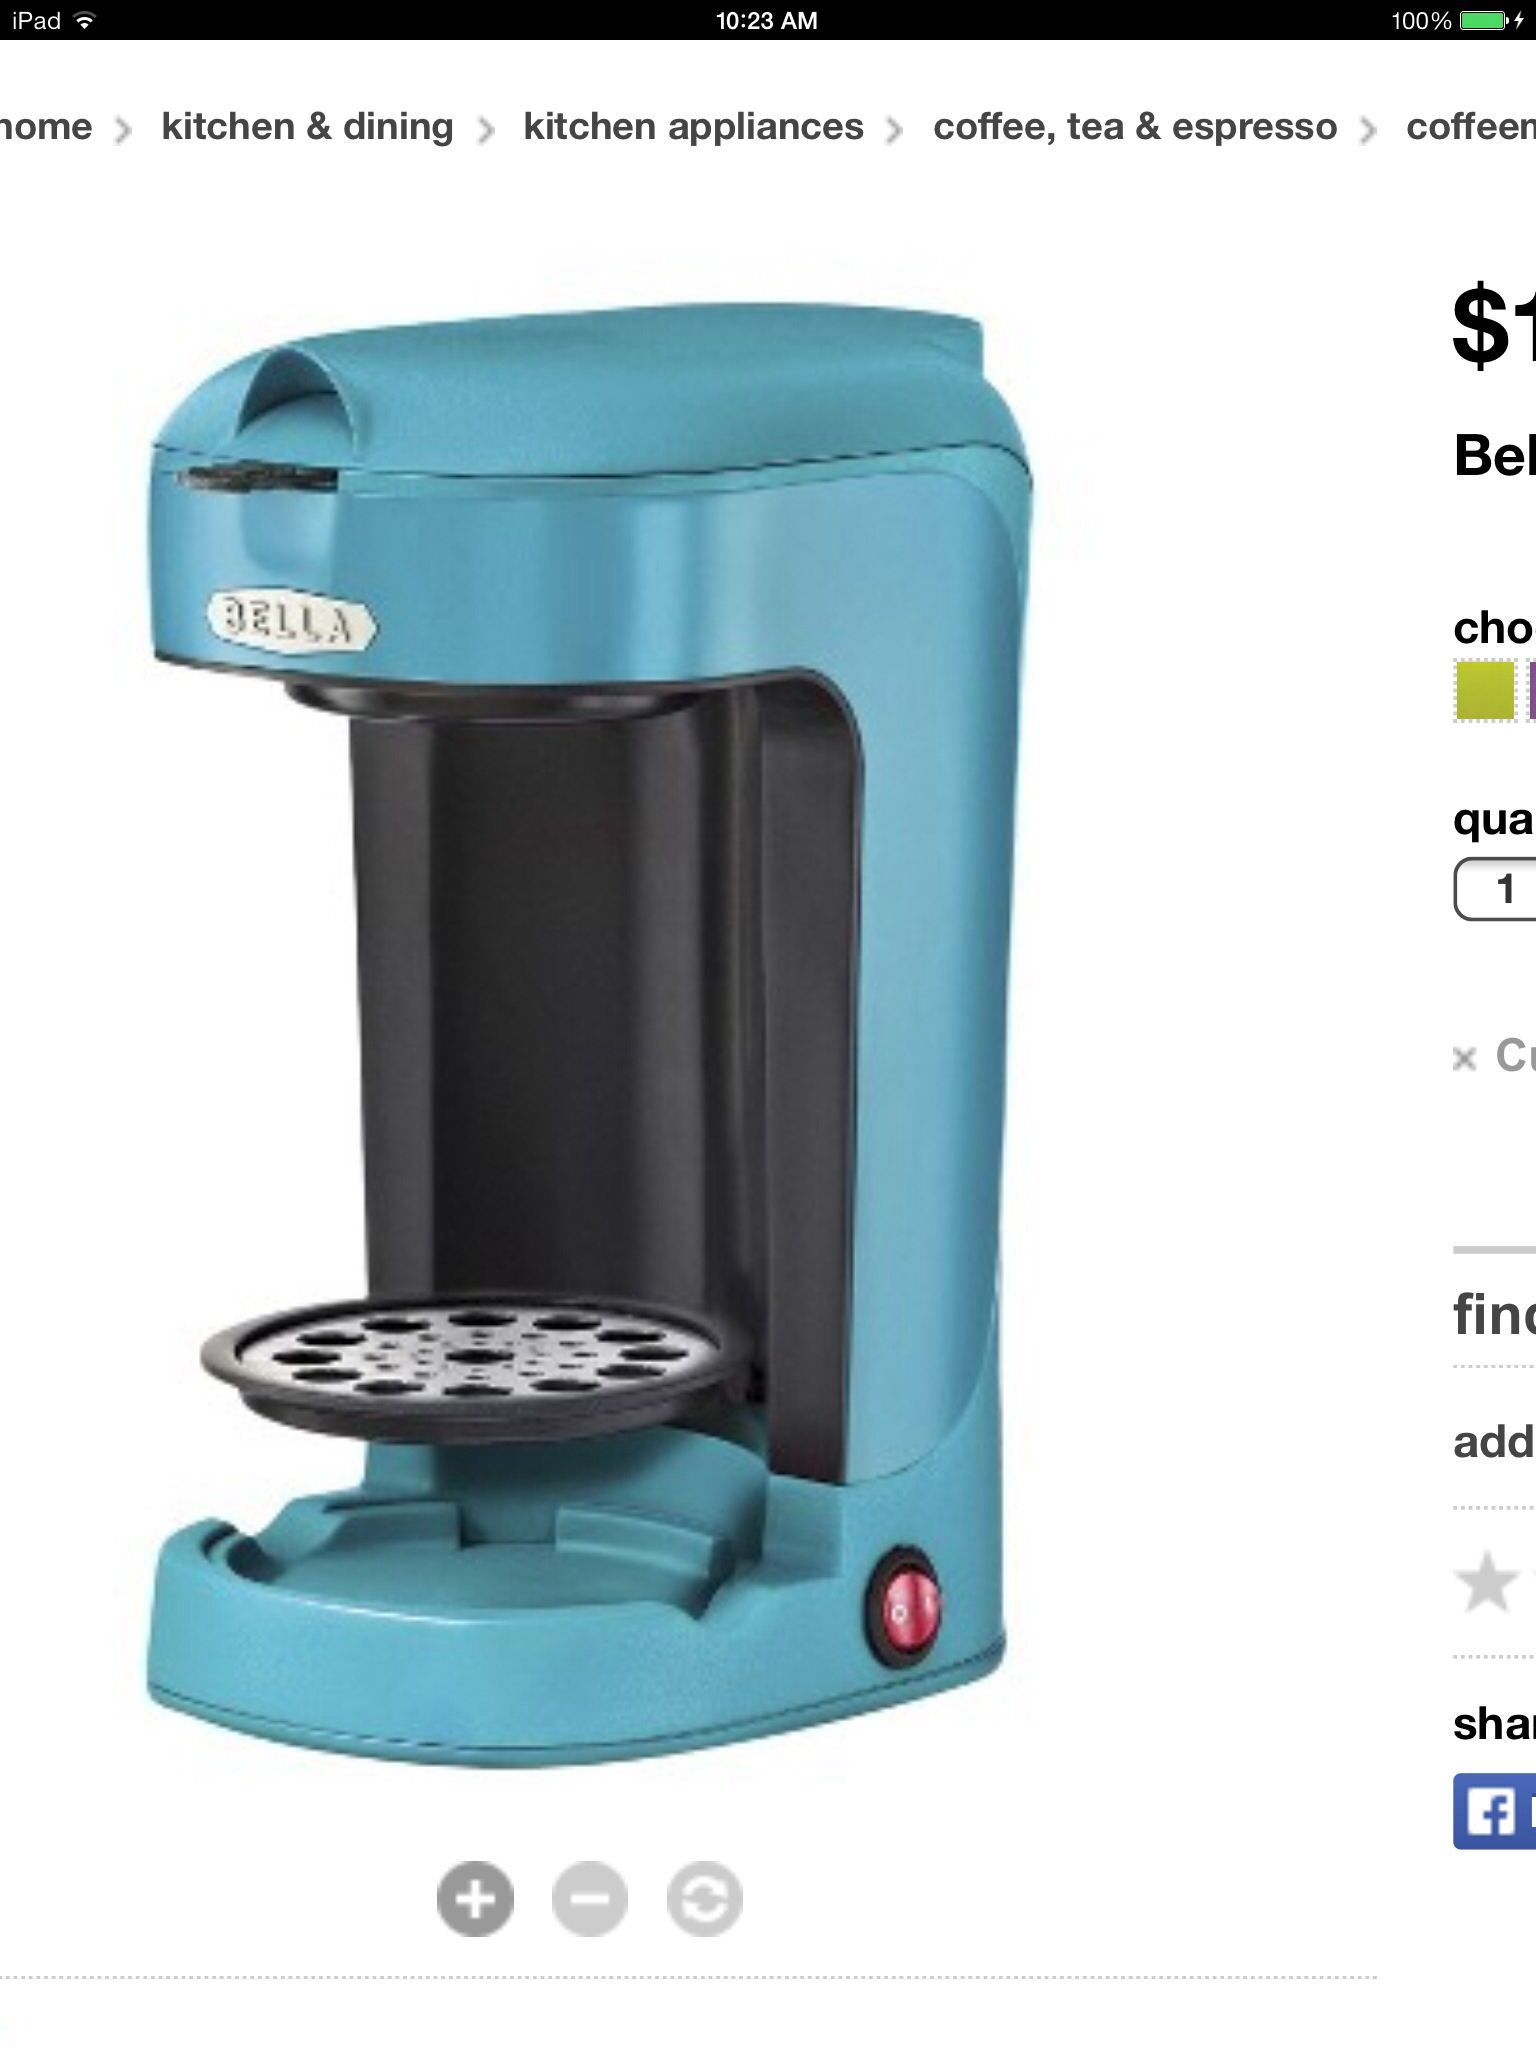 Bella single cup coffee maker, comes in different colors ...